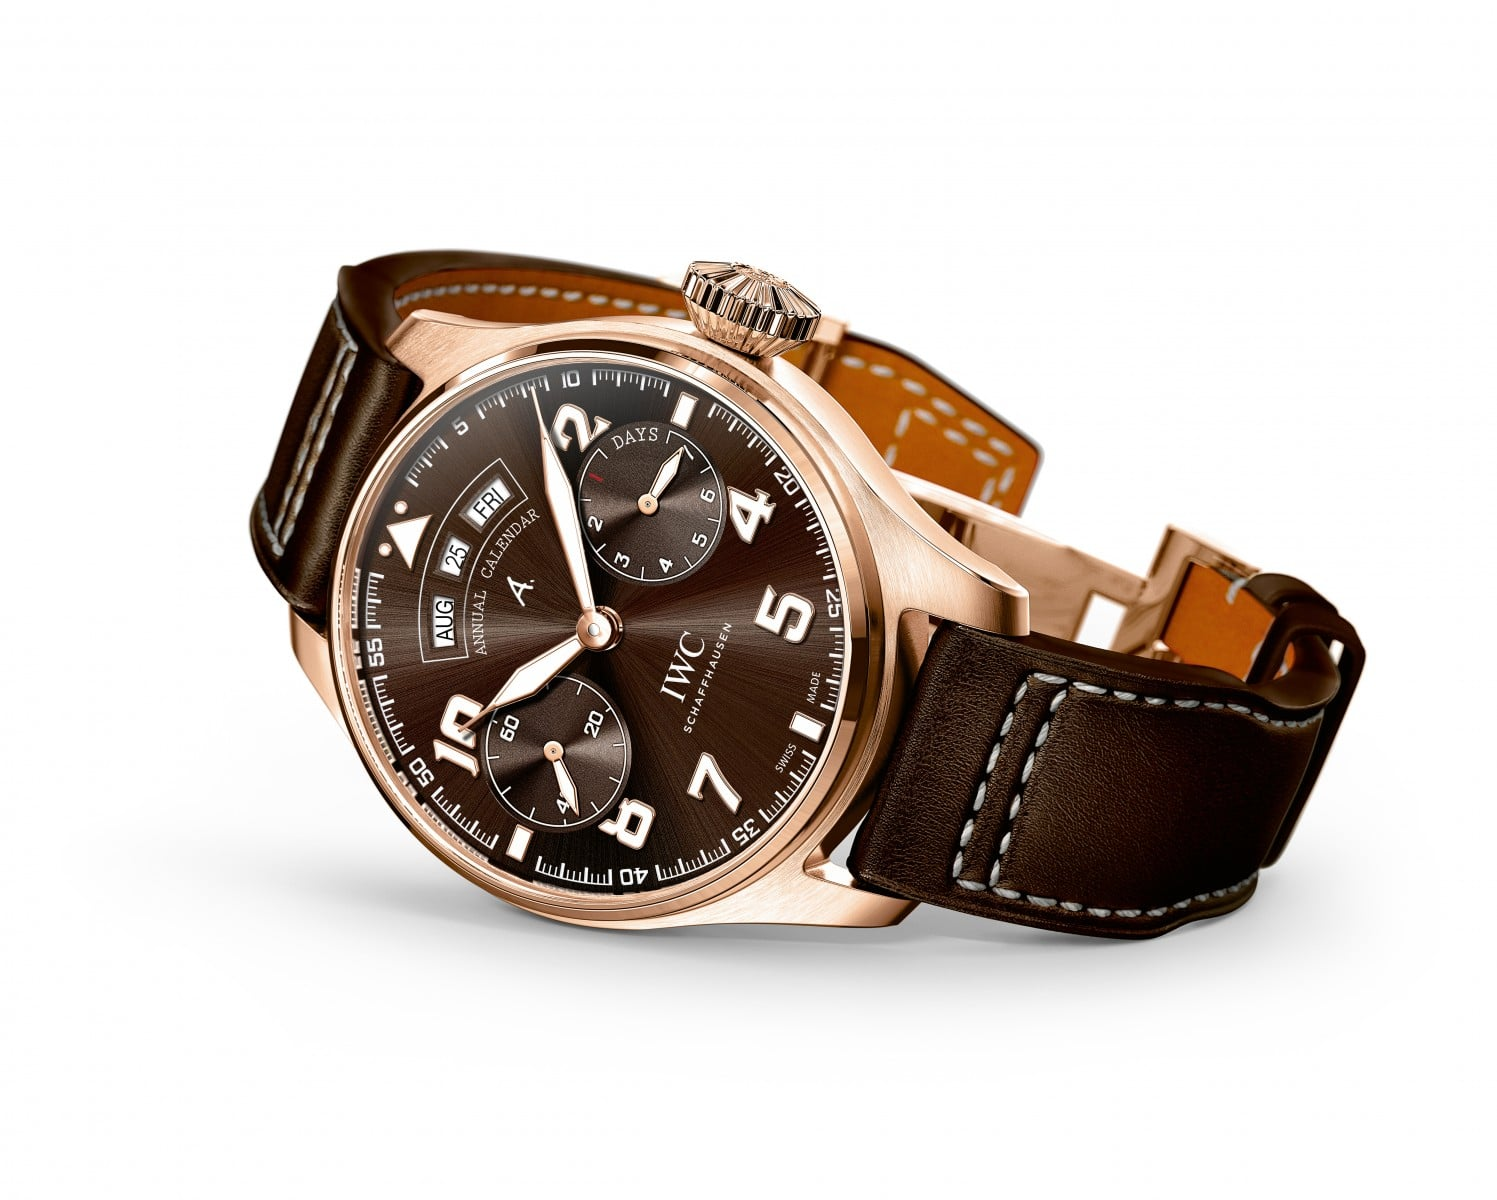 RELOJES: IWC – schaffhausen sends new pilots watches out onto the runway